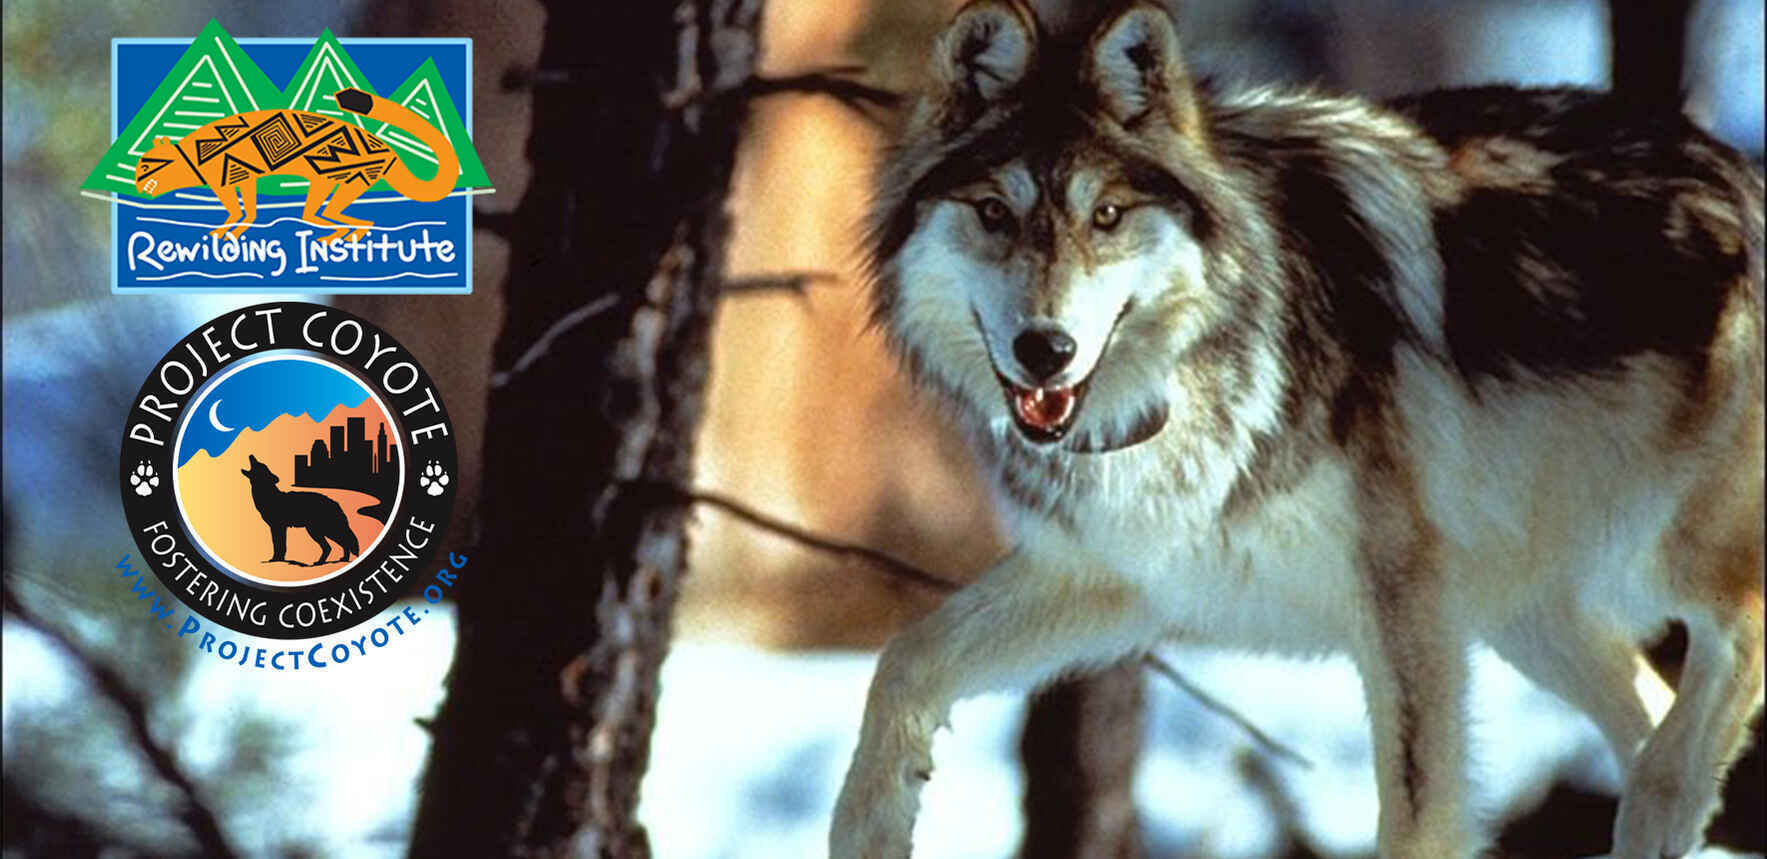 Help us protect carnivores and the Rewilding Institute Board will DOUBLE your donation! image